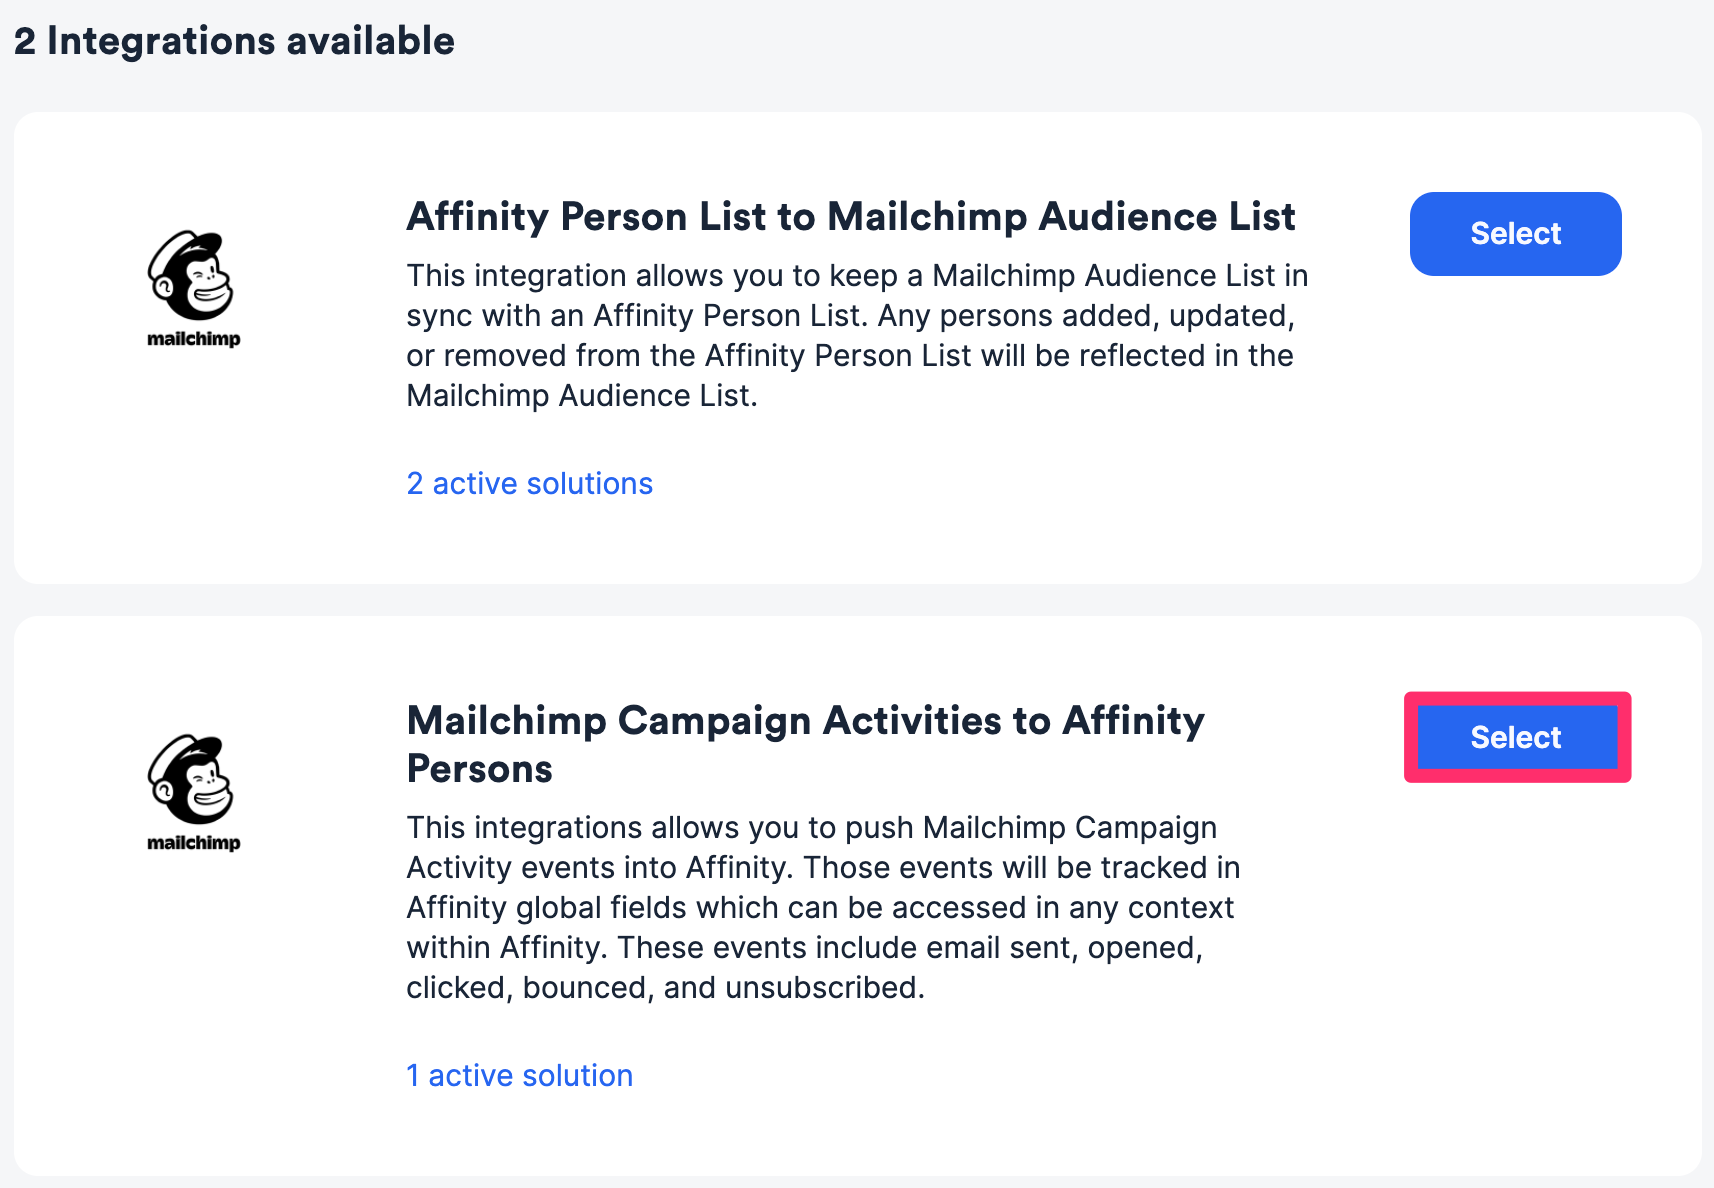 Mailchimp_Campaign_Activities_to_Affinity_Persons.png